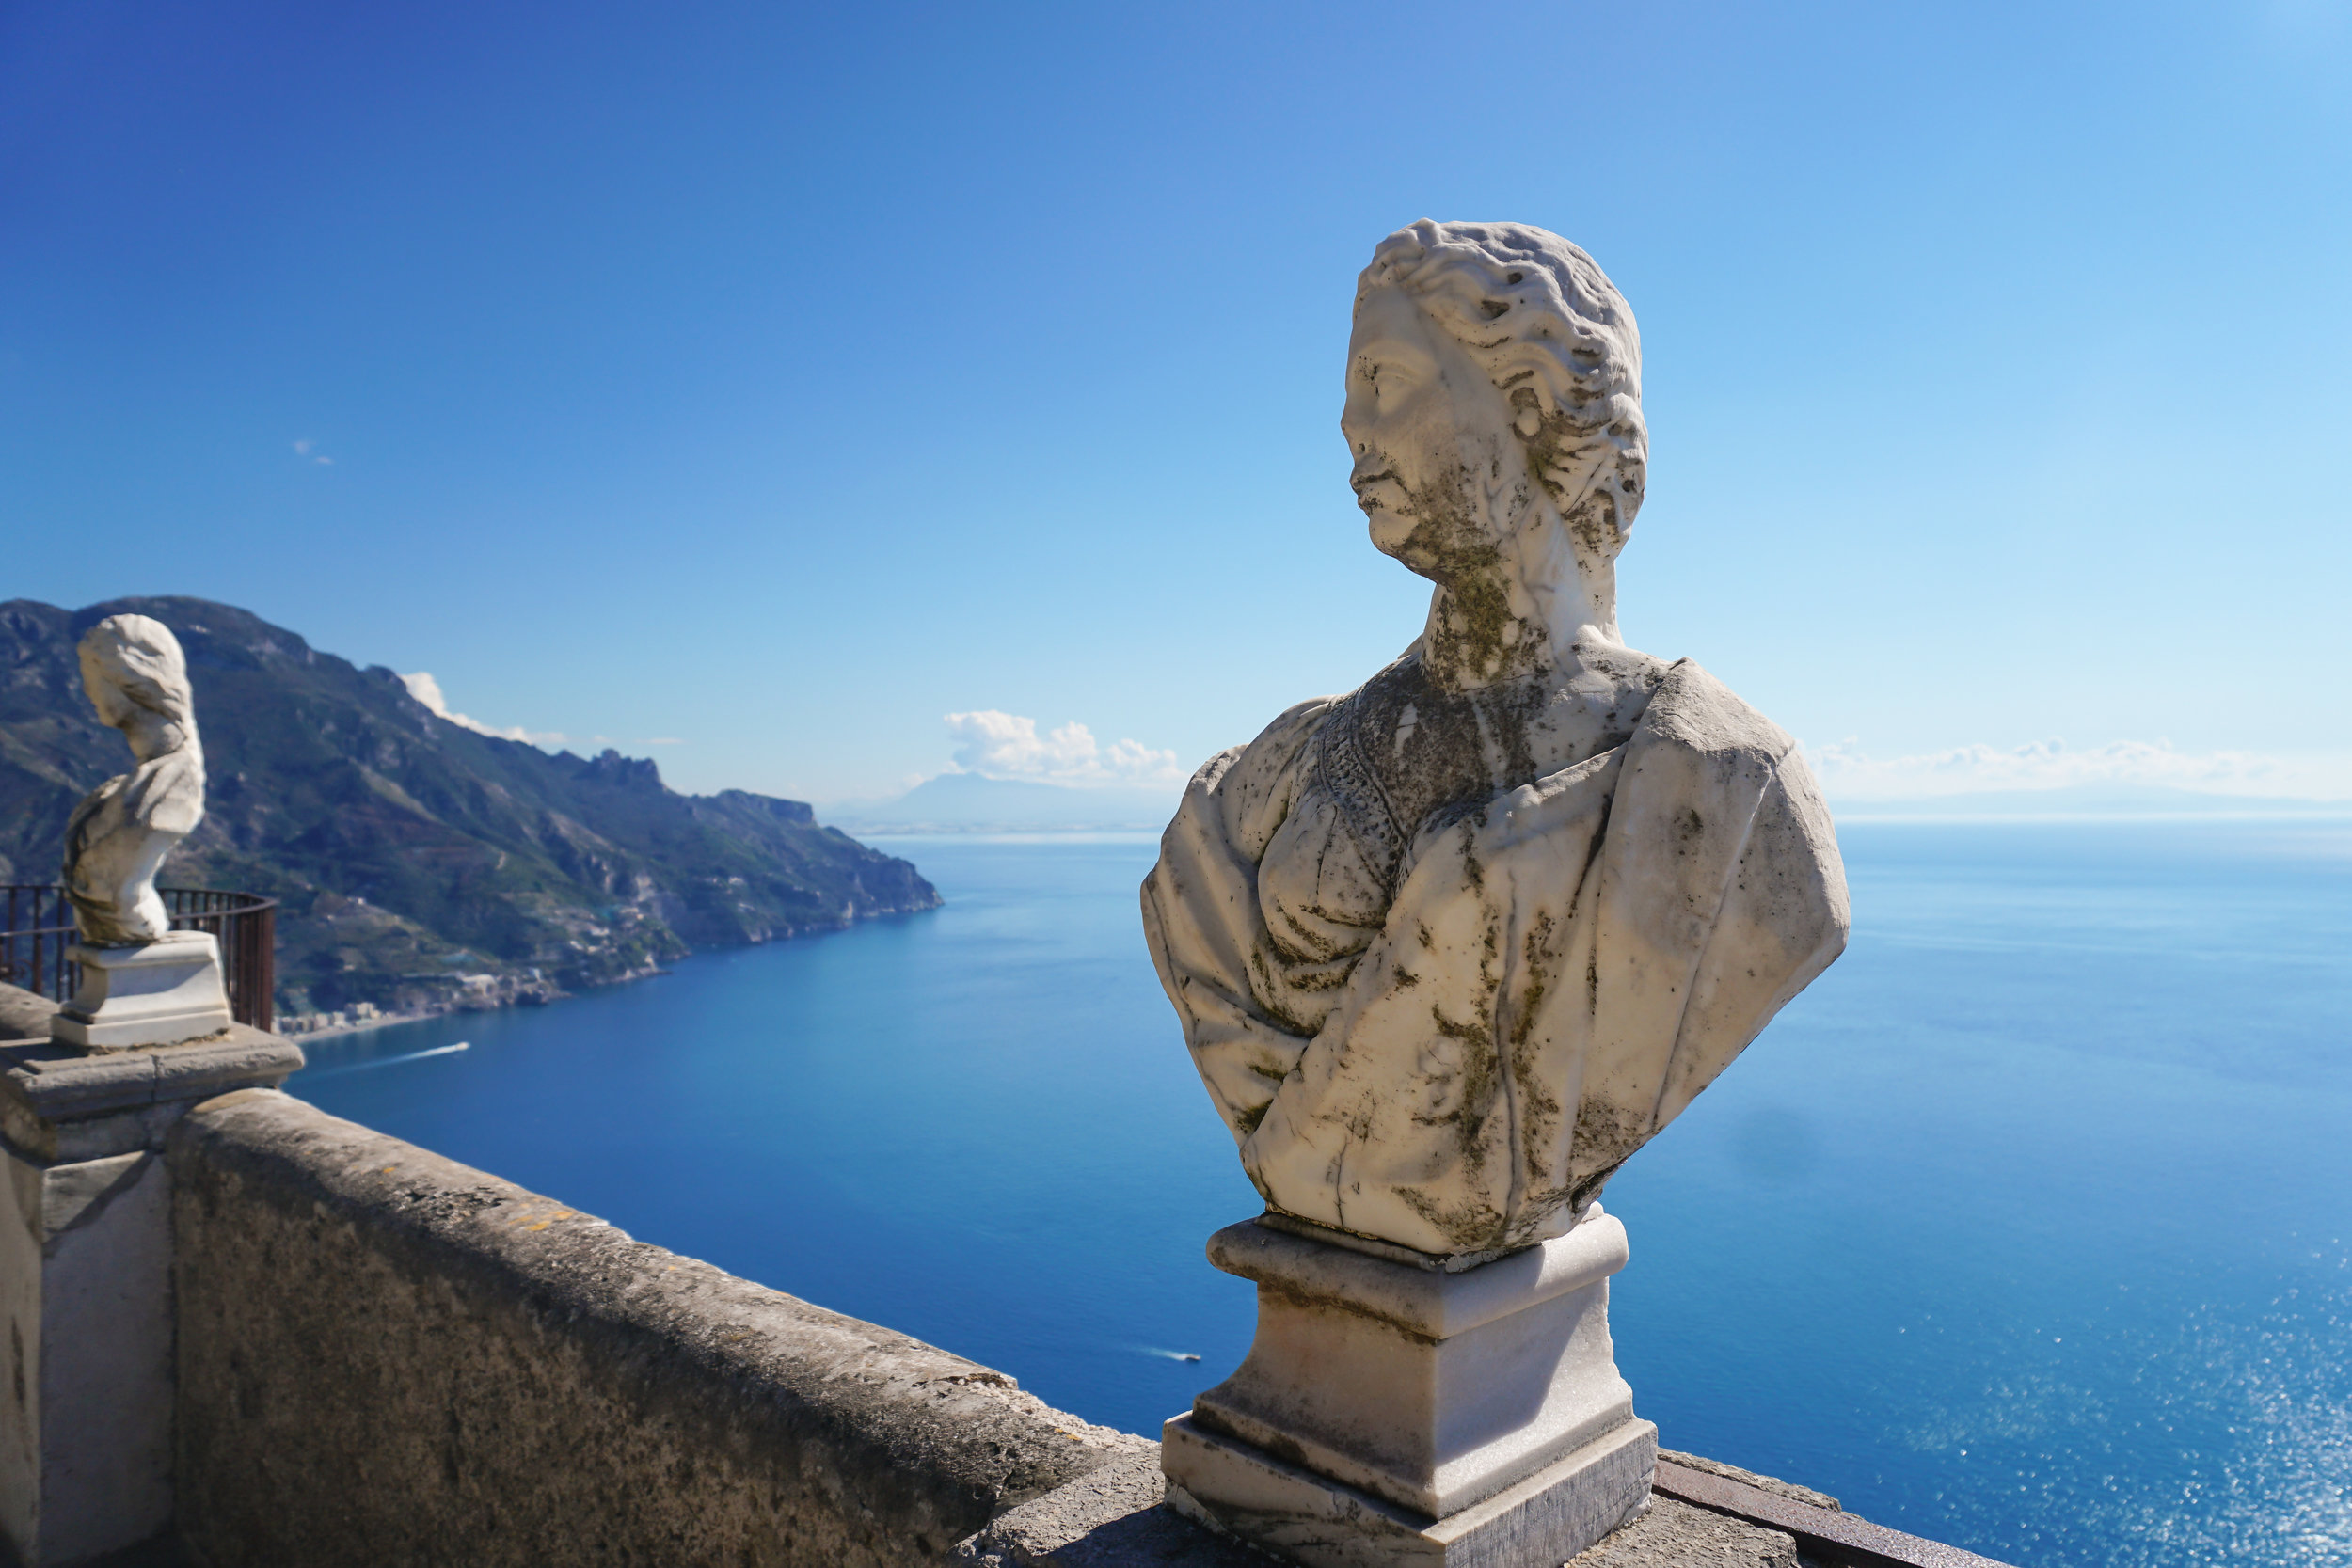 stunning views of the Mediterranean and the dramatic coastline below from villa cimbrone, ravello